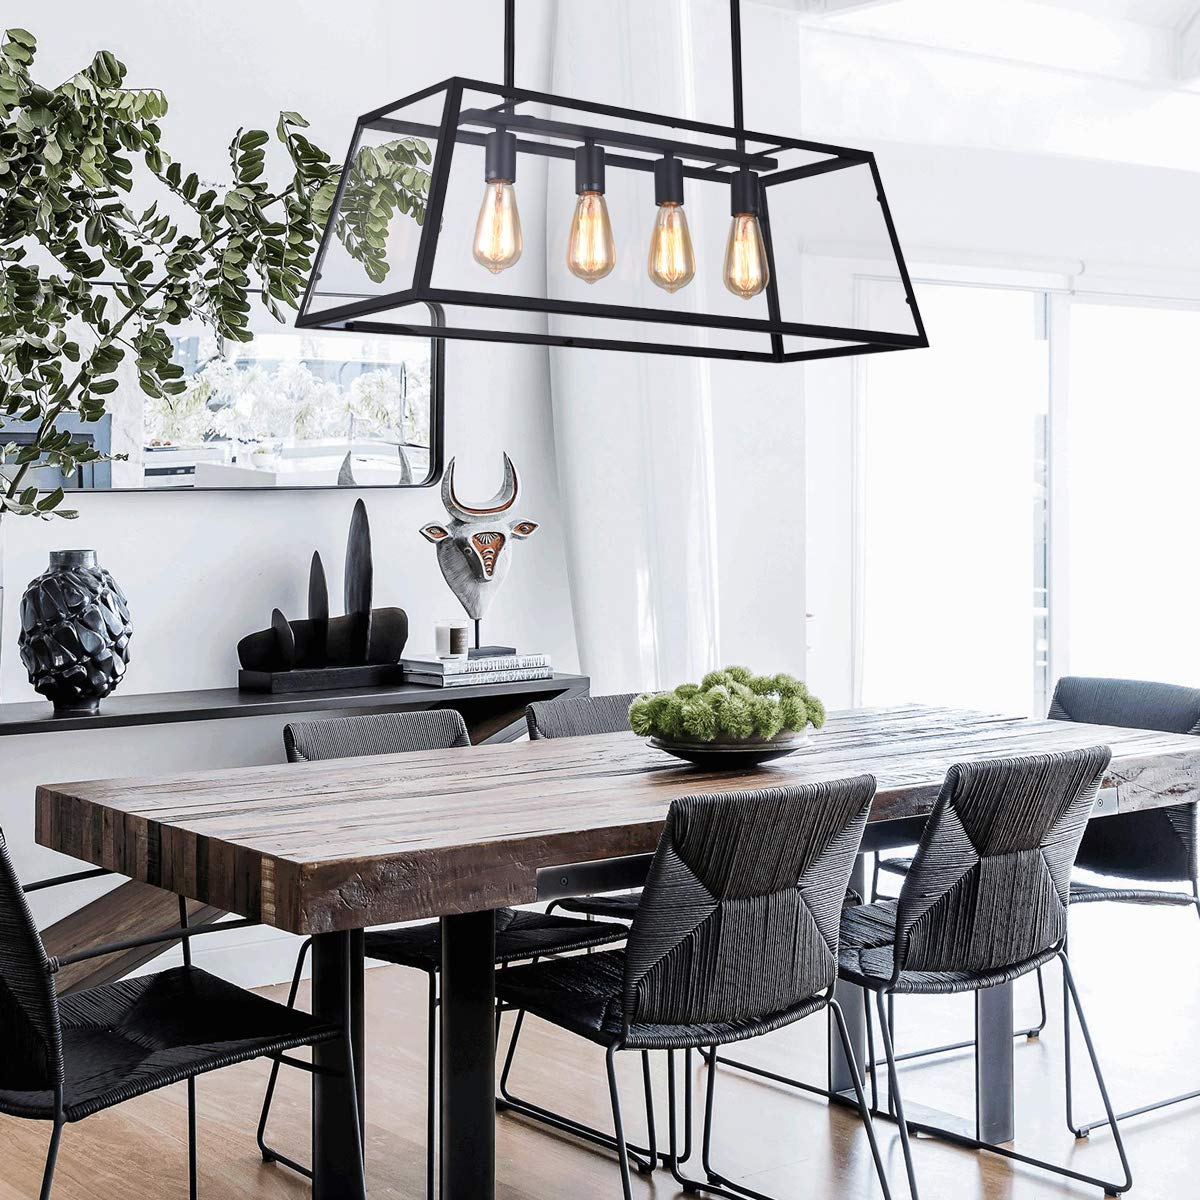 mirrea 4-Light Kitchen Island Pendant Matte Black Shade with Clear Glass Panels Modern Industrial Chandelier for Dinning Room by mirrea (Image #3)